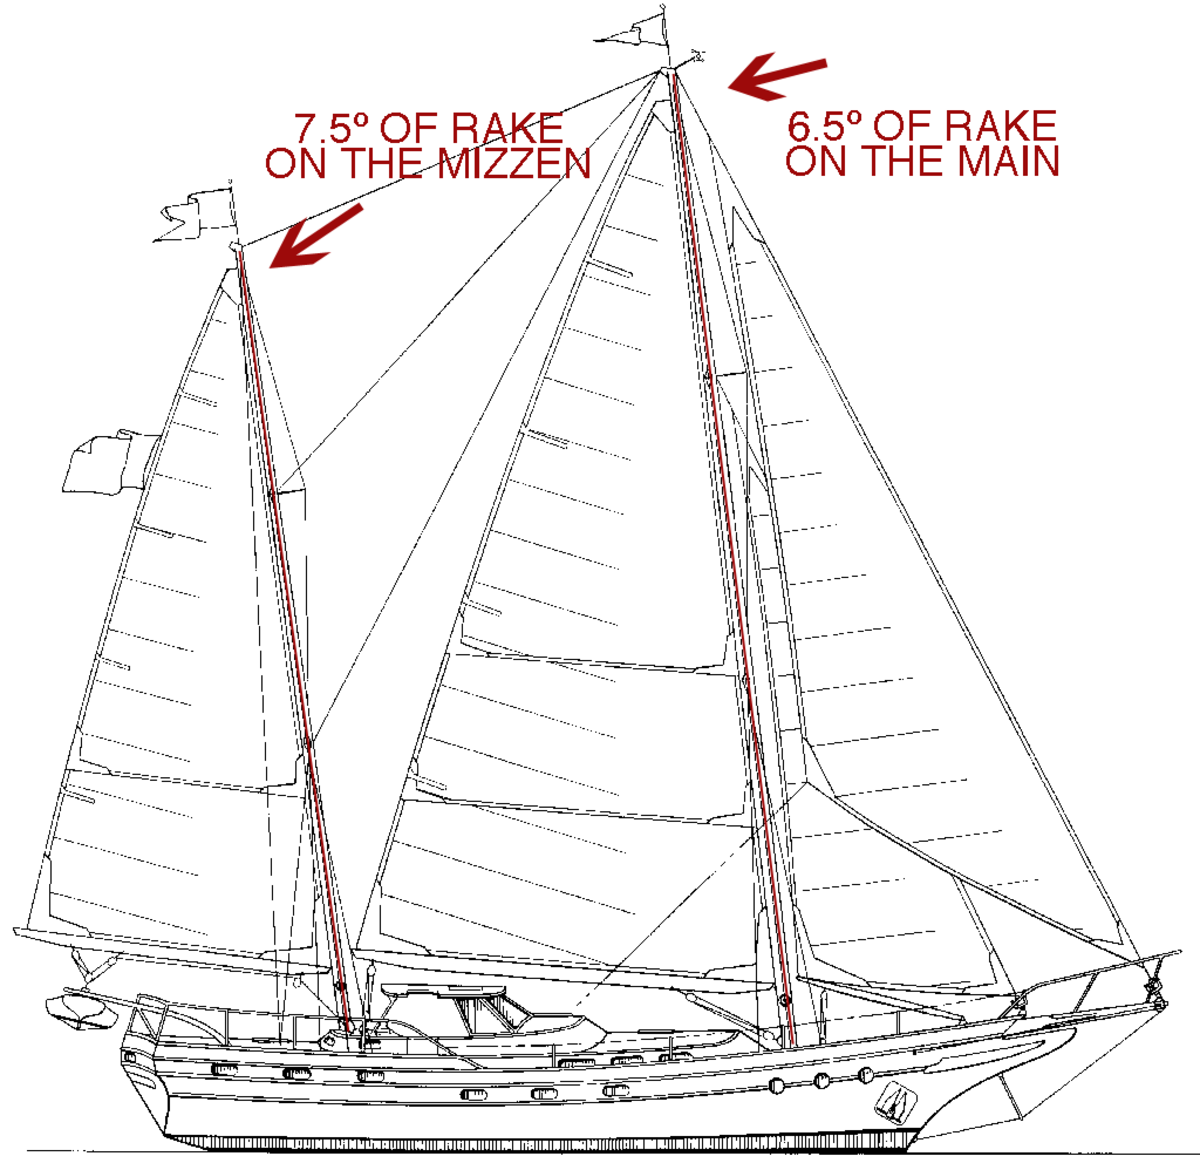 When a boat has more than one mast, there should be increased rake on each mast going aft, or they will appear to converge at the top